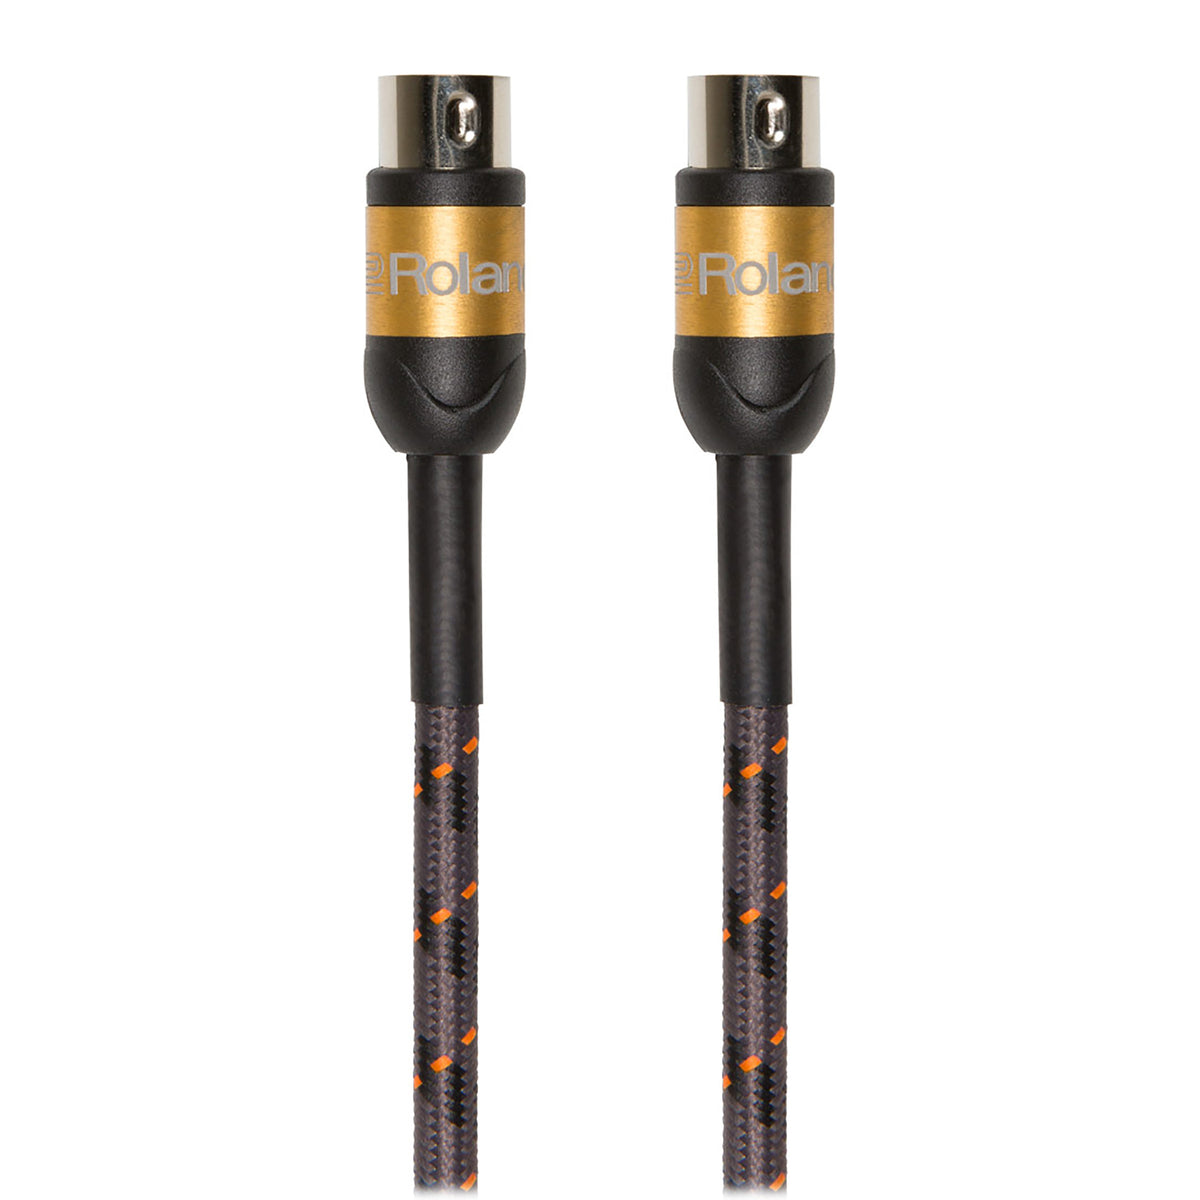 Roland: Gold Series MIDI Cable - 10 ft. (RMIDI-G10)